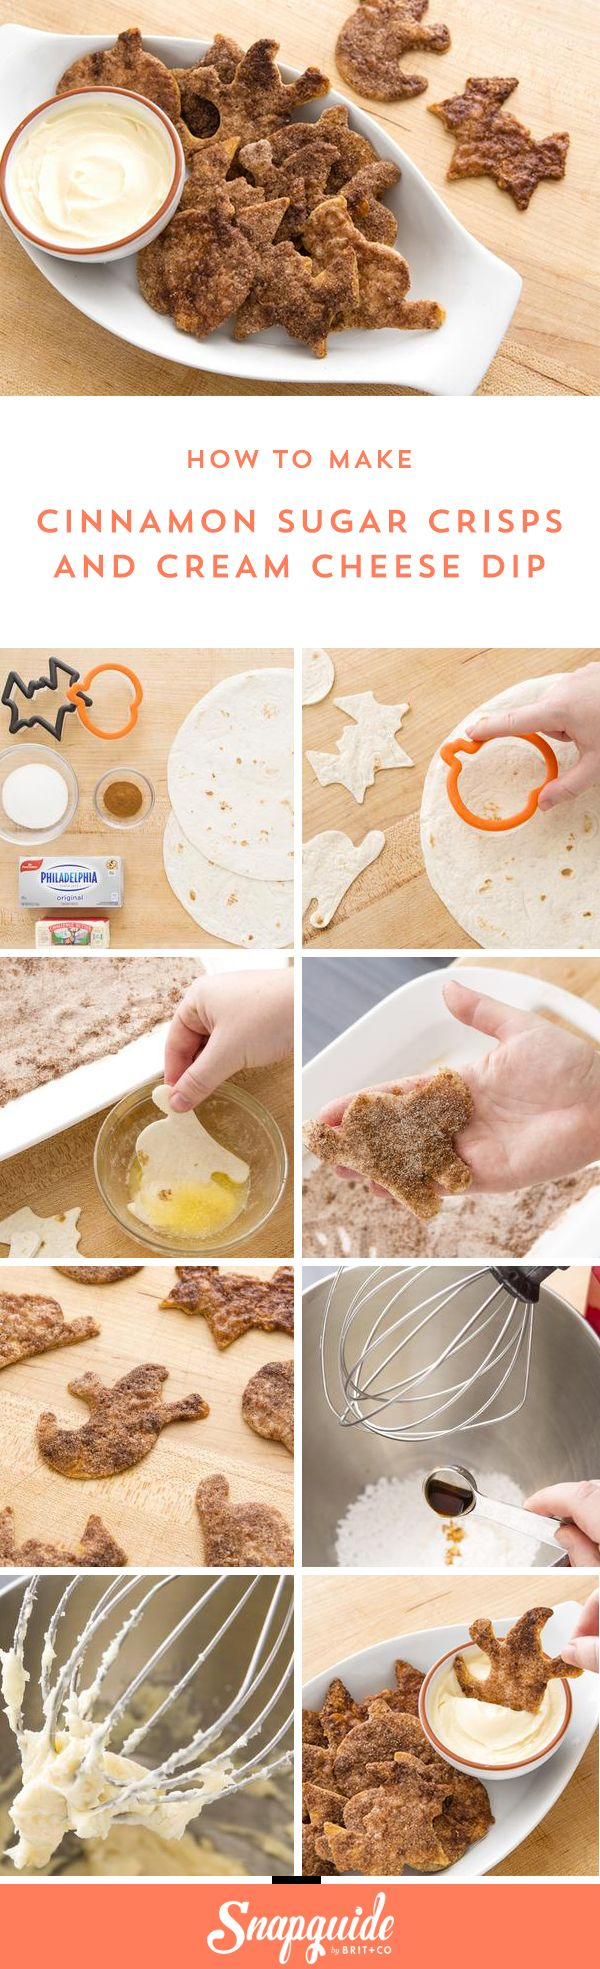 You can make ghost + bat-shaped Cinnamon Sugar Crisps with Cream Cheese Dip using this easy Halloween recipe.